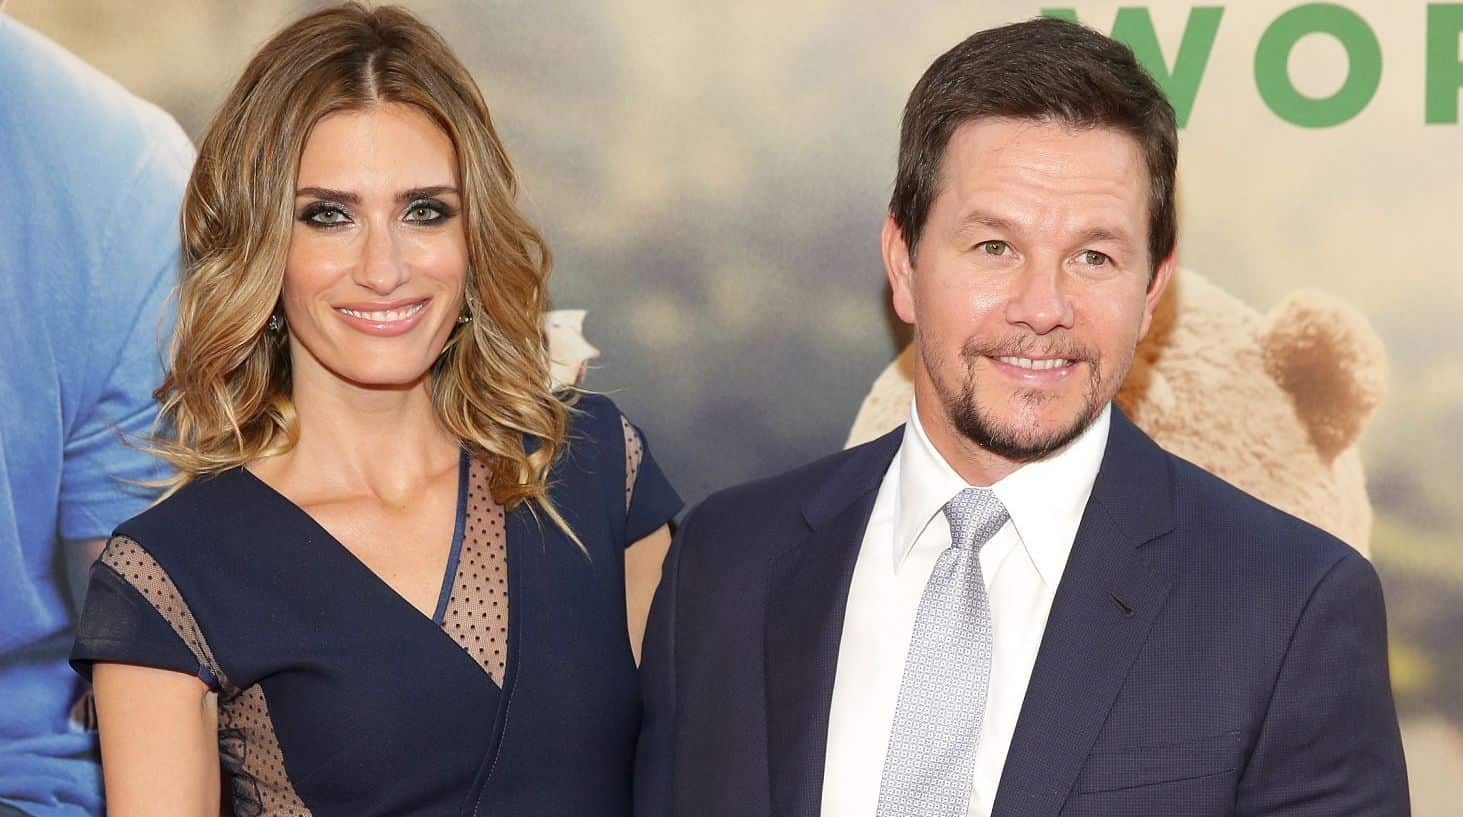 Mark Wahlberg Pays Sweet Tribute To Wife Rhea Durham On Their 11th Wedding Anniversary And Fans Wish They Were Her!